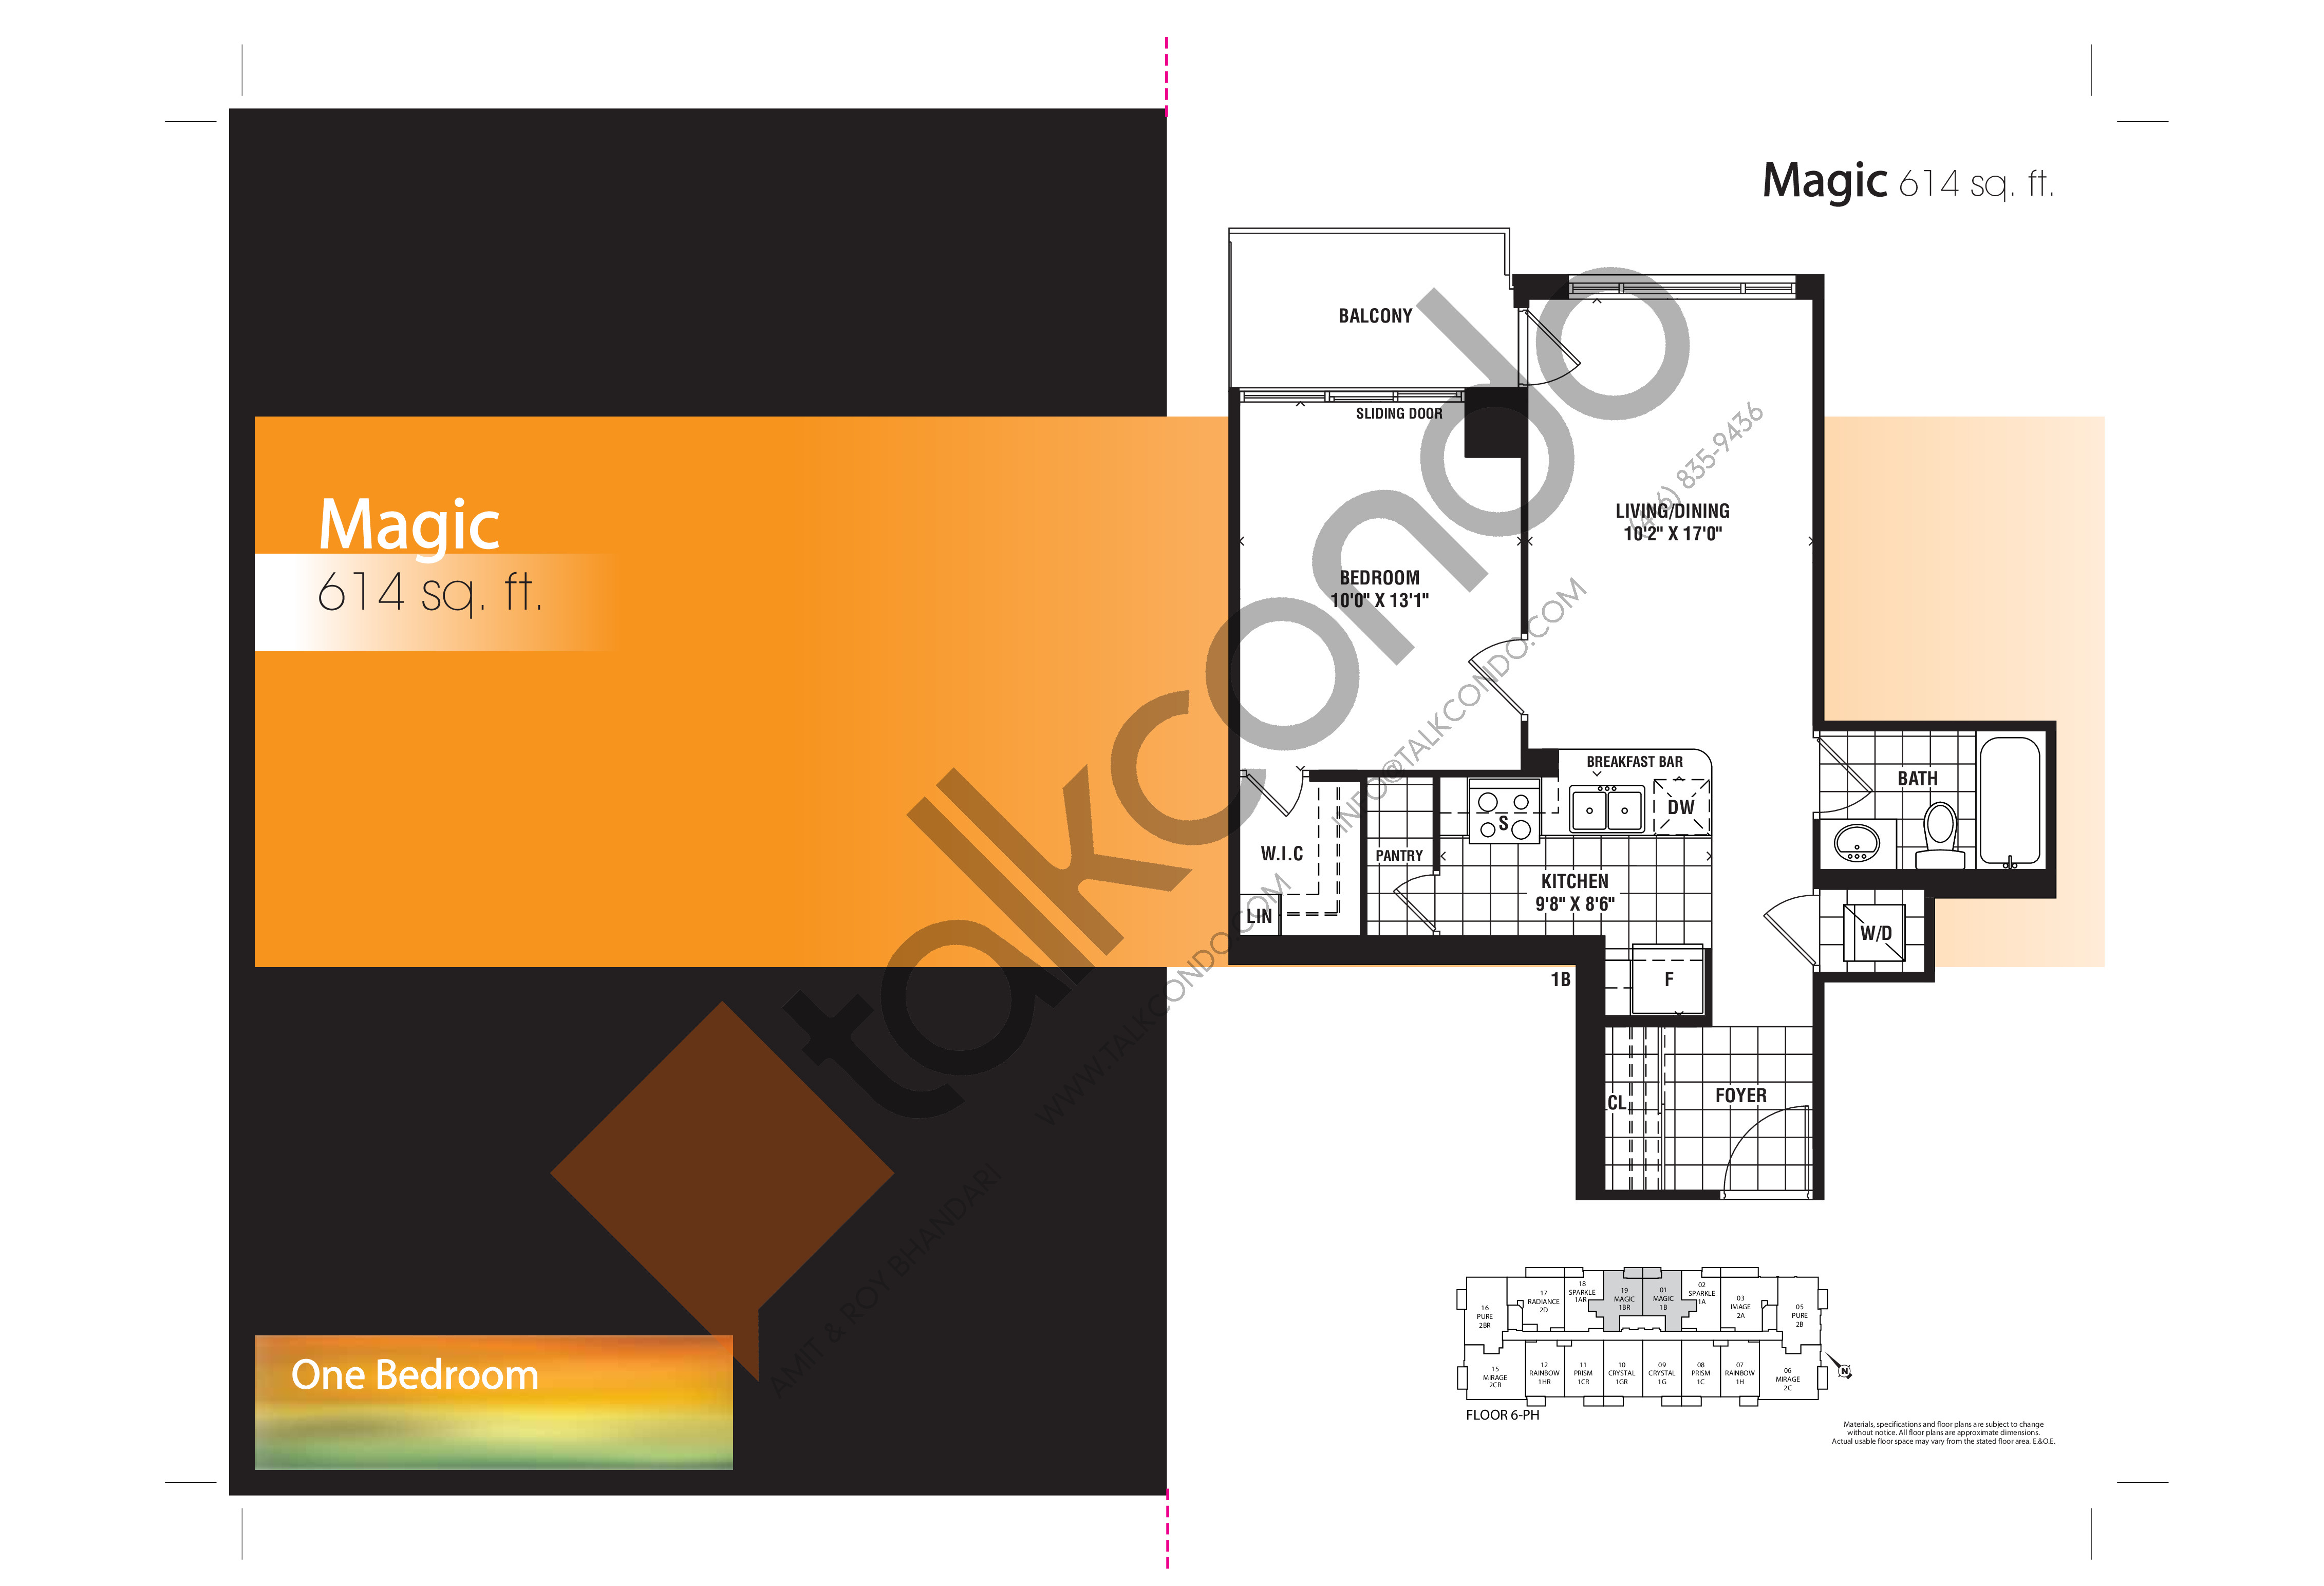 Magic Floor Plan at Mirage Condos - 614 sq.ft